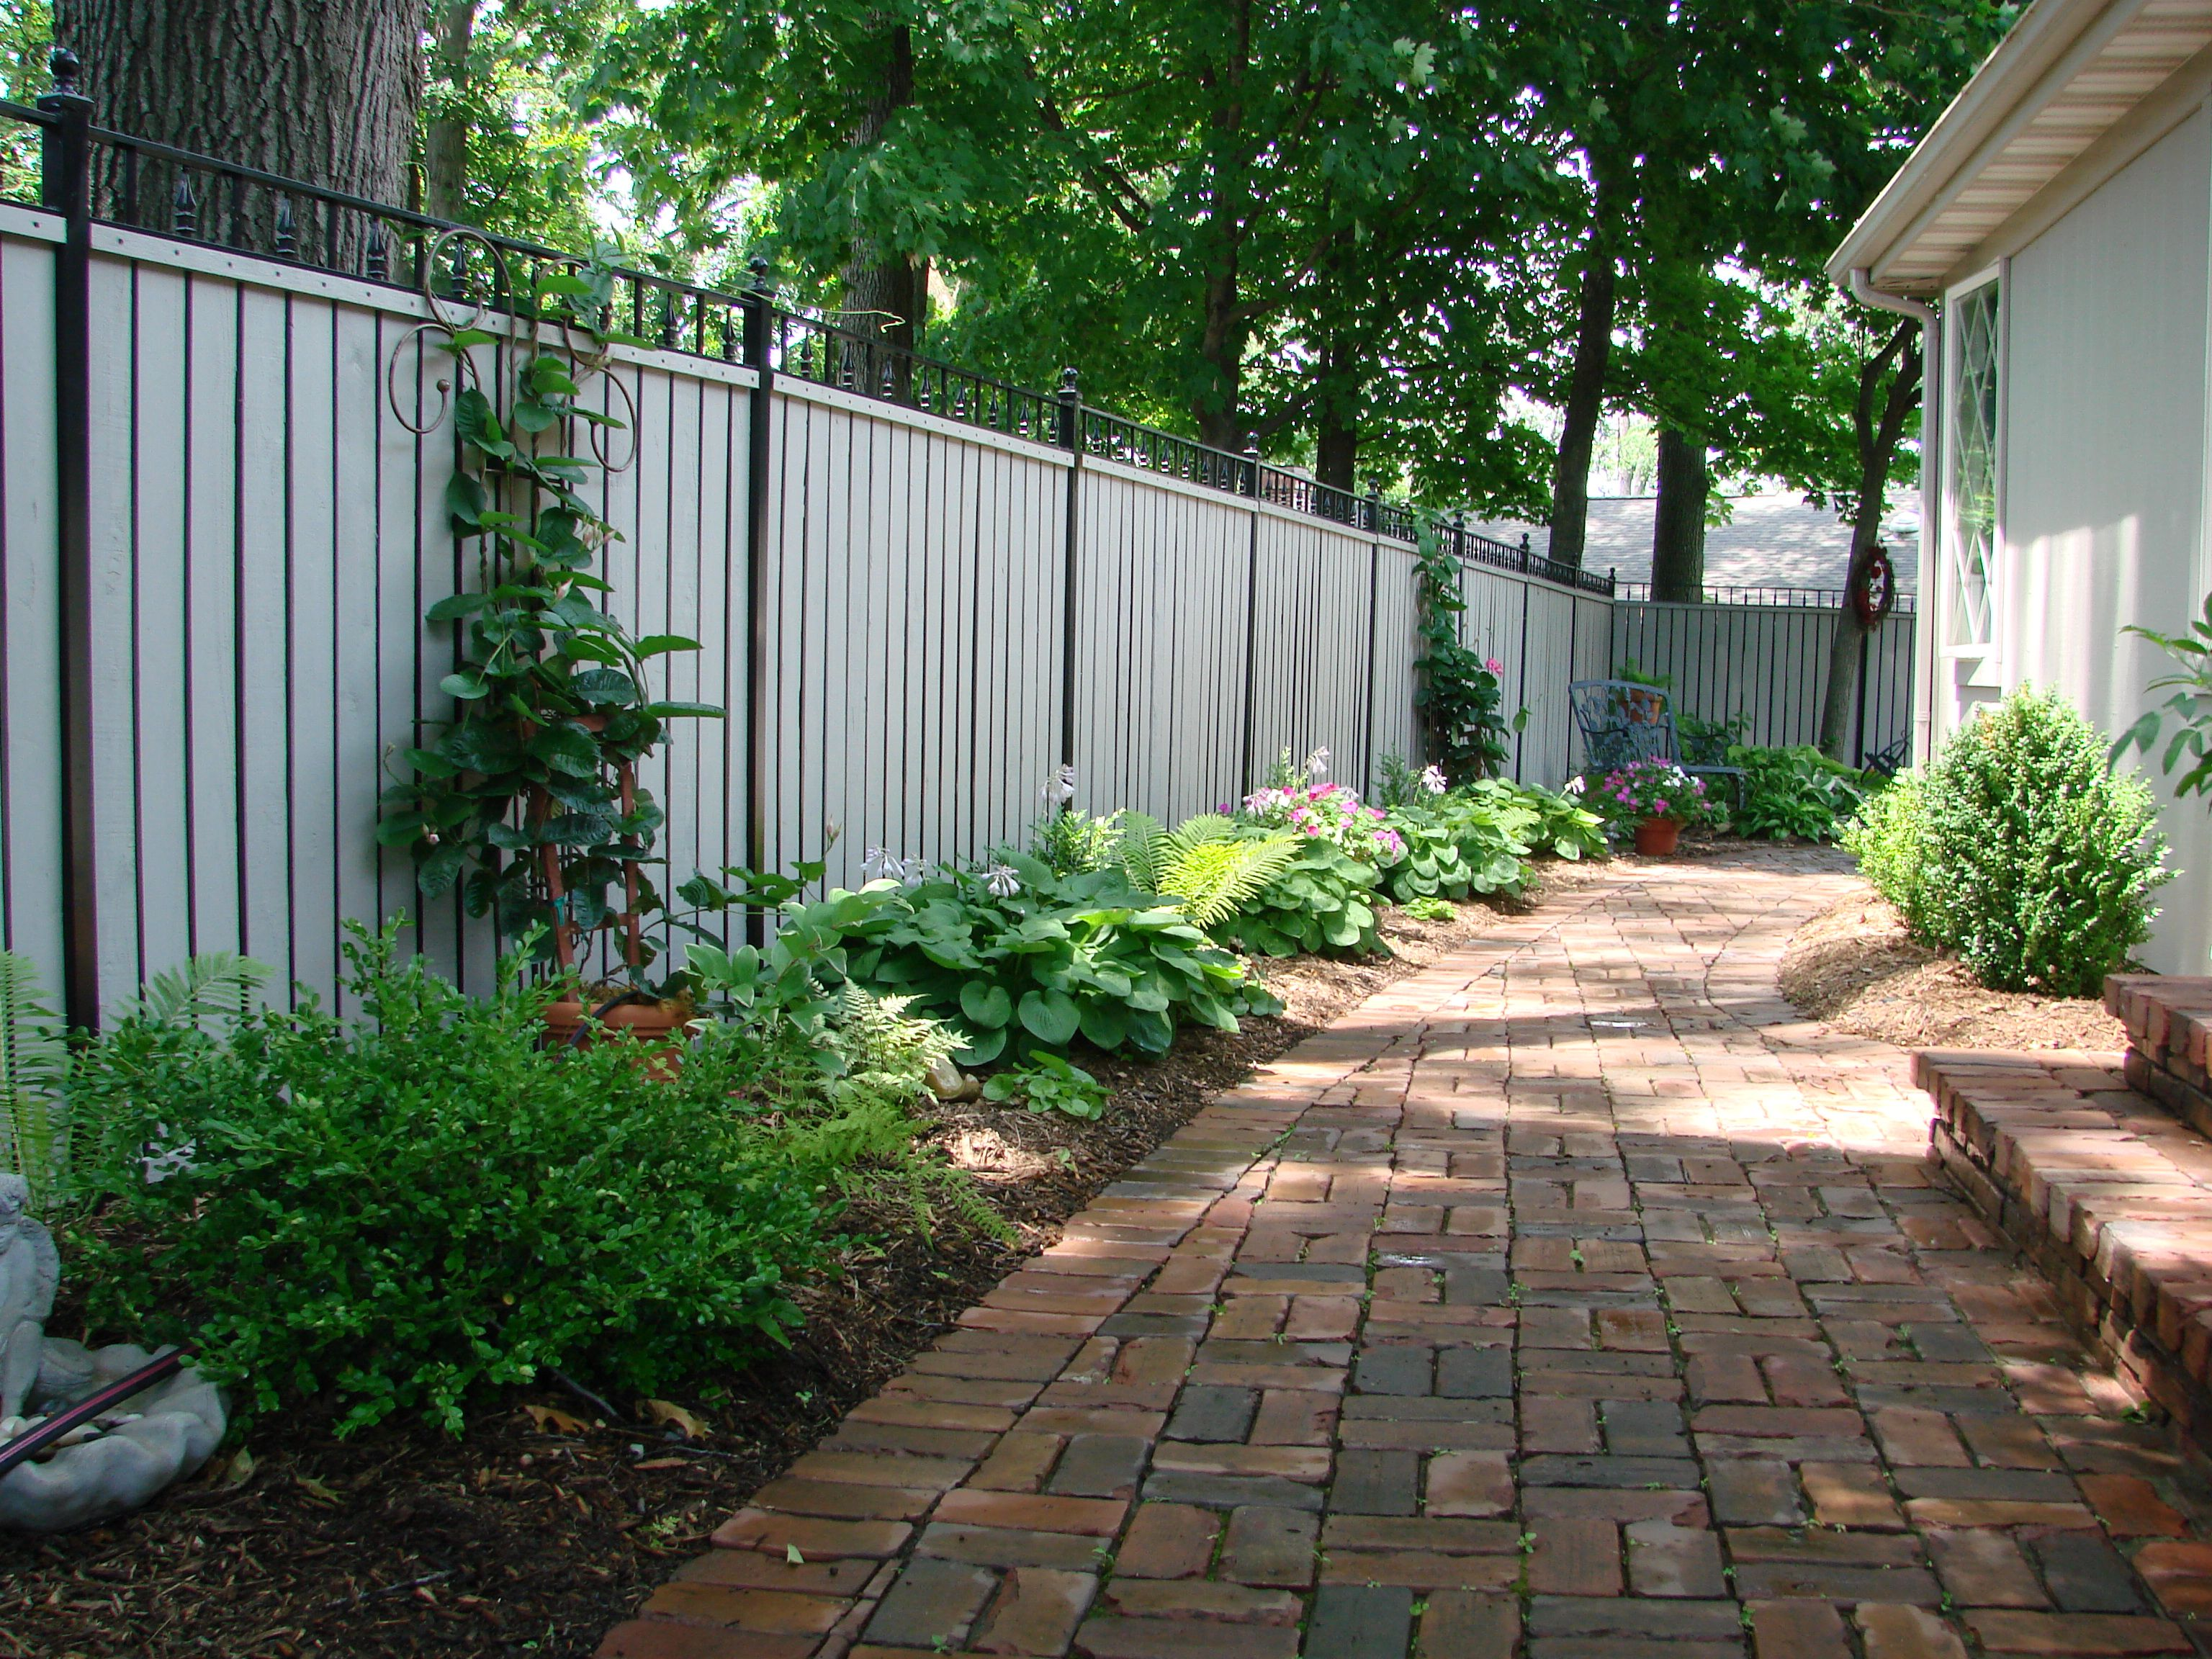 Landscaping along fence and pavers outdoor spaces for Garden along fence